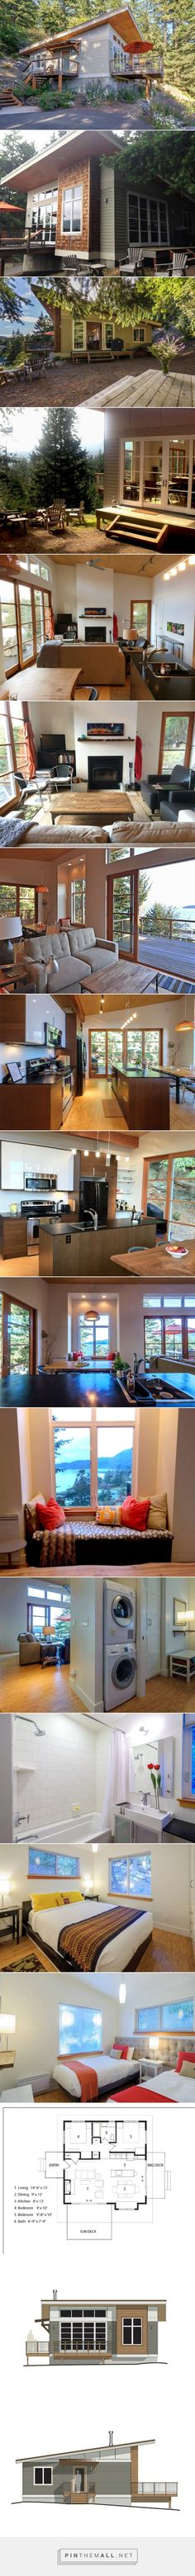 Small Contemporary Cabin on Orcas Island... - a grouped images picture - Pin Them All This is an 804 sq. ft. contemporary cabin in Eastsound, WA that's available to rent on Airbnb. It was designed by Merrill Leonard of Twistoff Homes. 804 Sq. Ft. Contemporary Cabin (Plans Available!)